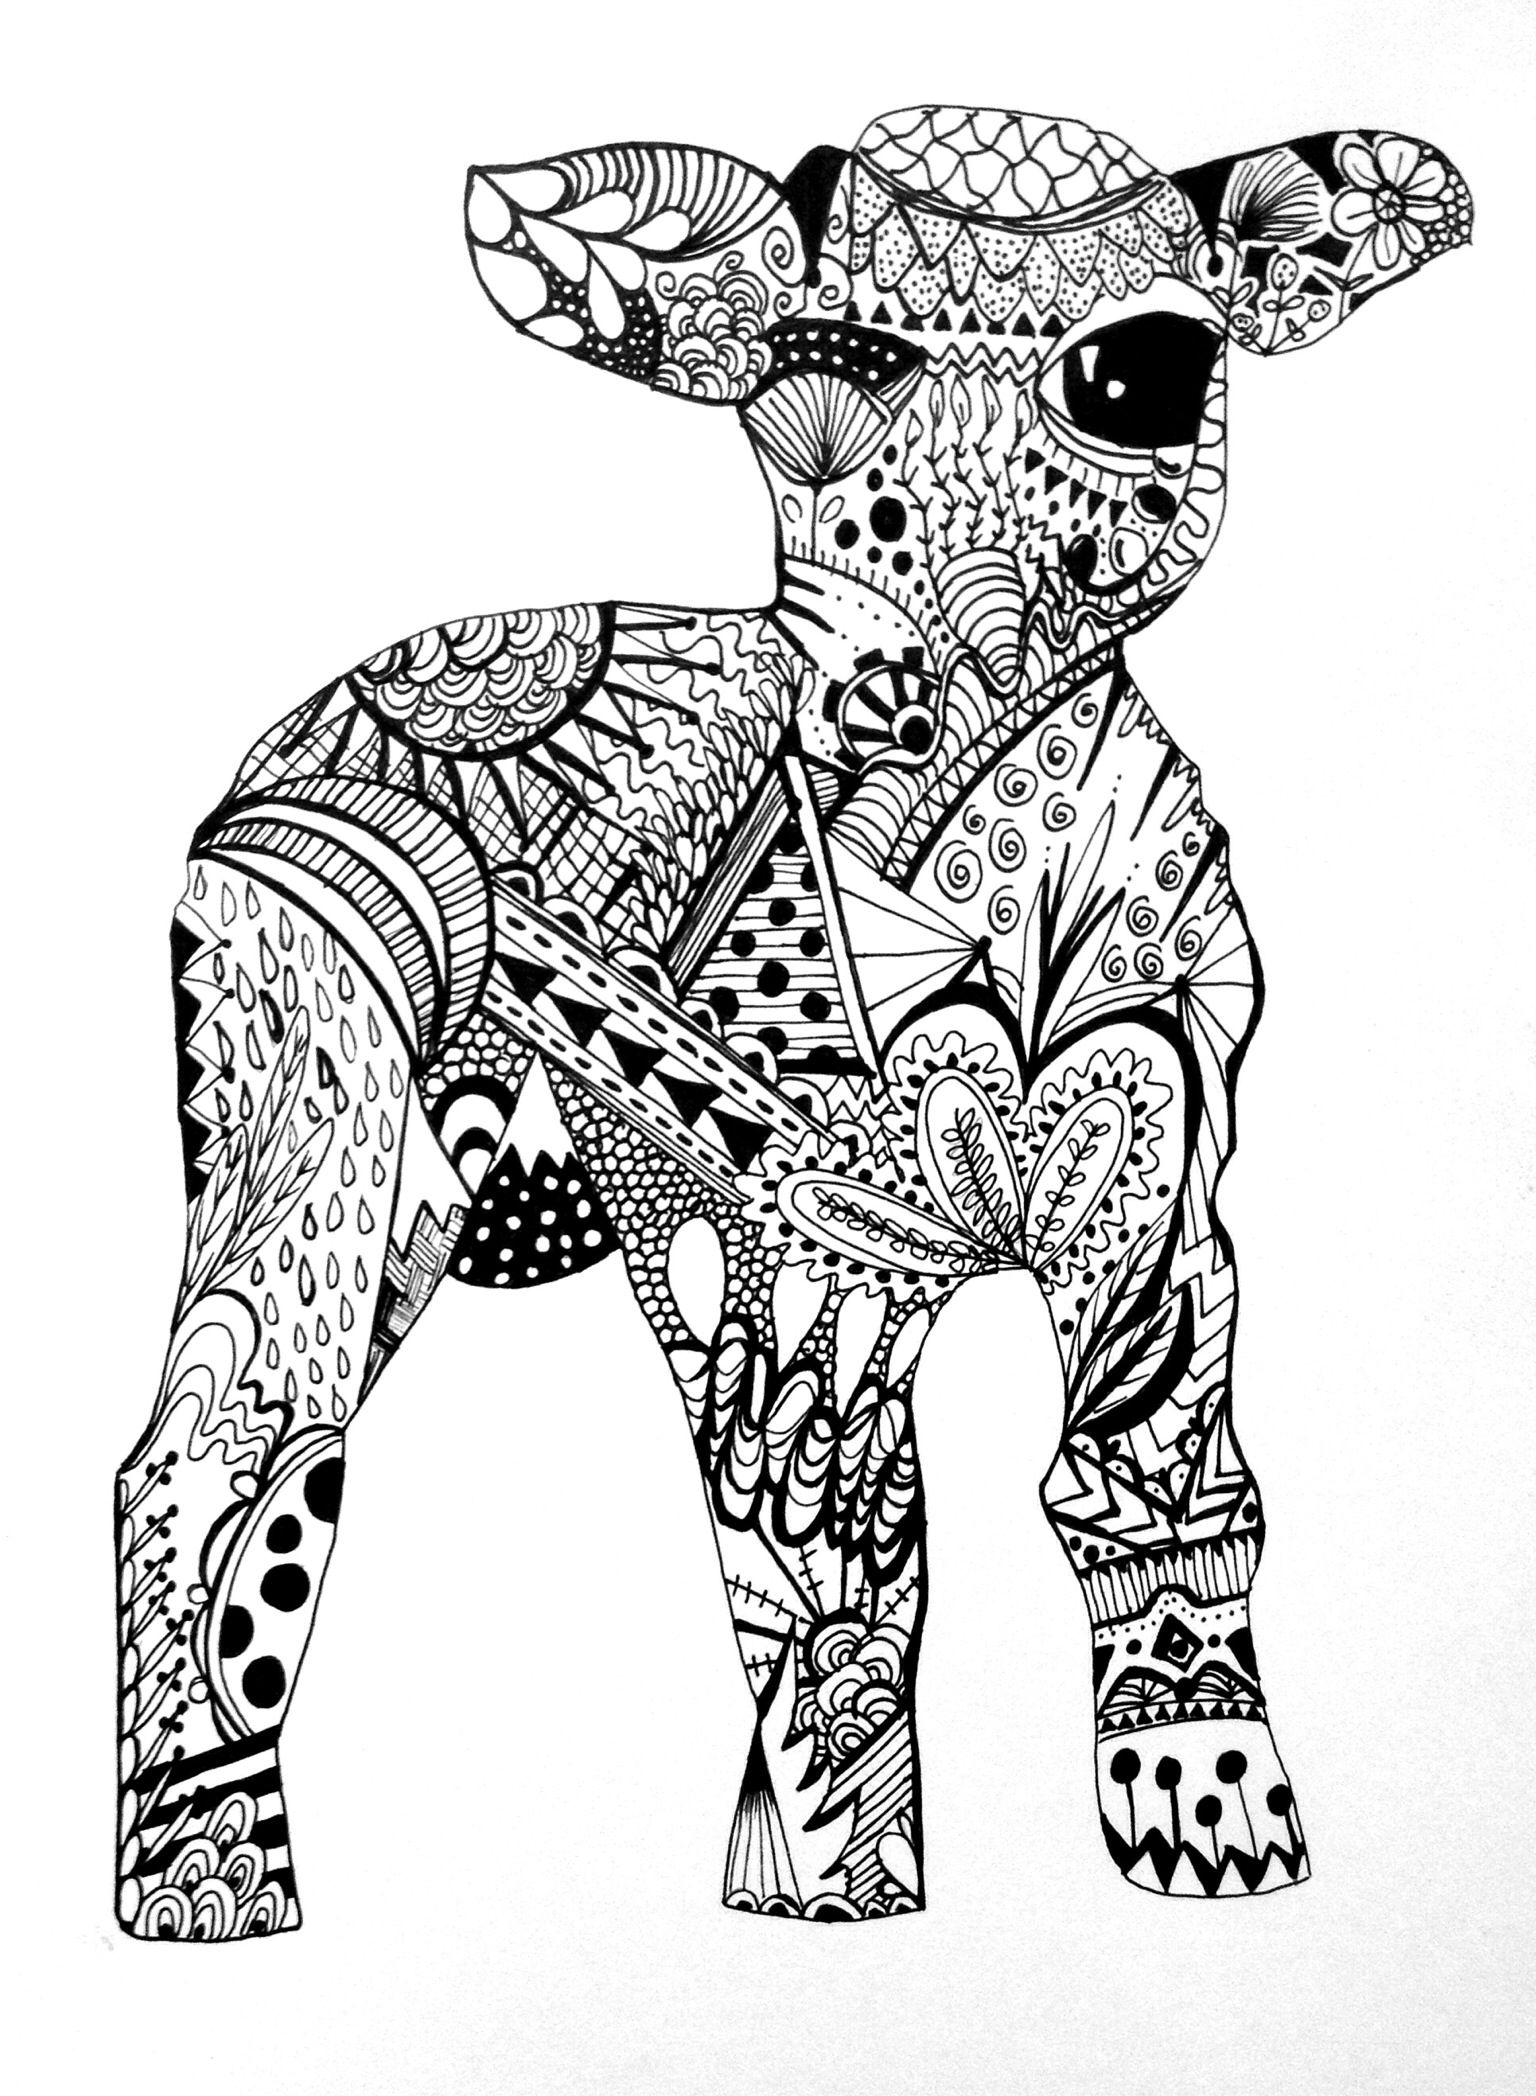 Zentangle Lamb By George Draws Animal Adult Coloring Book Art Projects Sheep Art